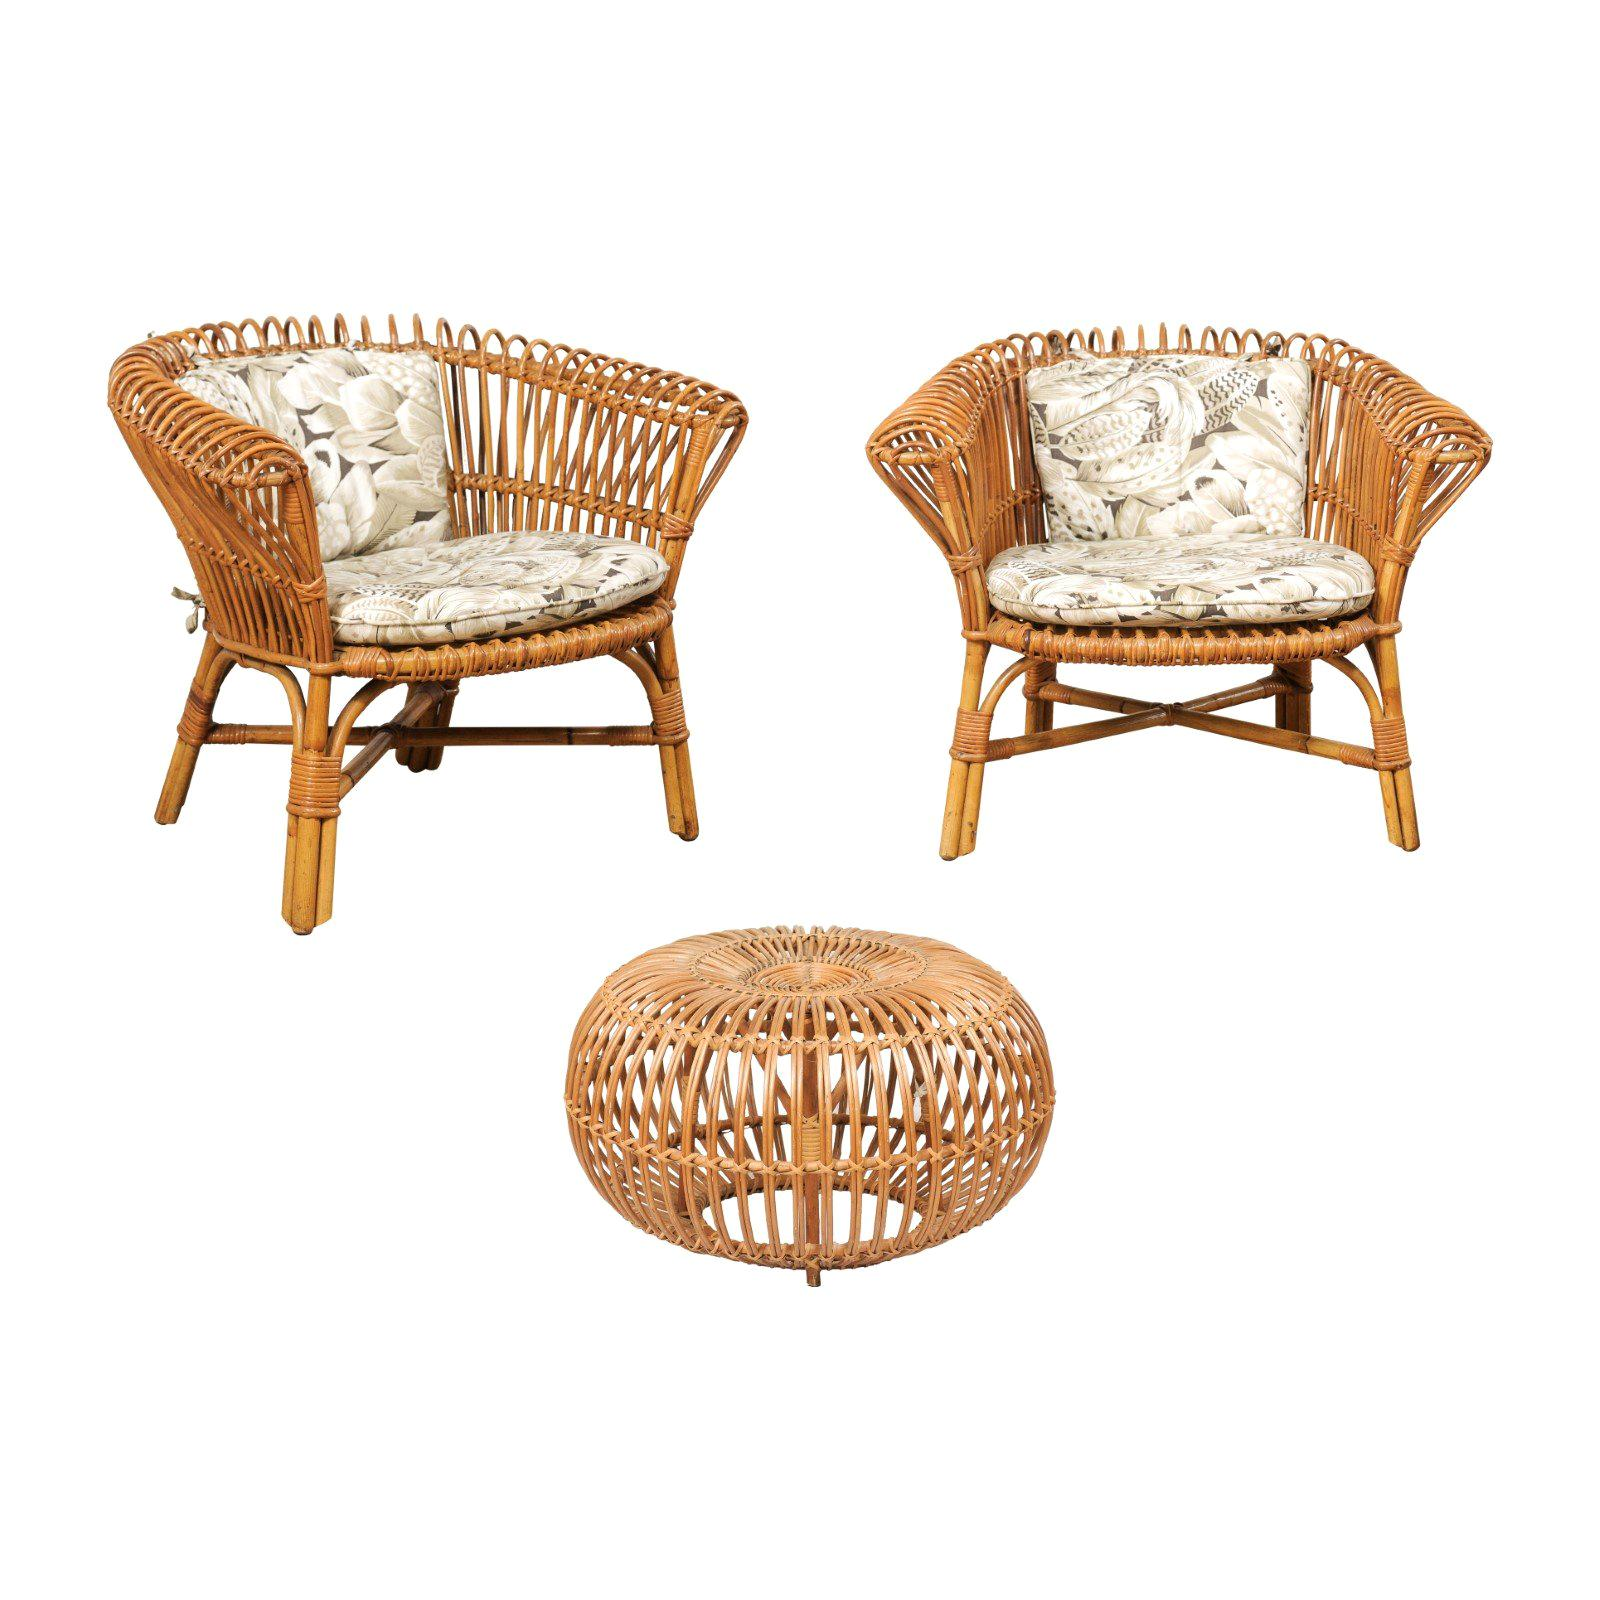 pair of vintage rattan chairs and ottoman patio set